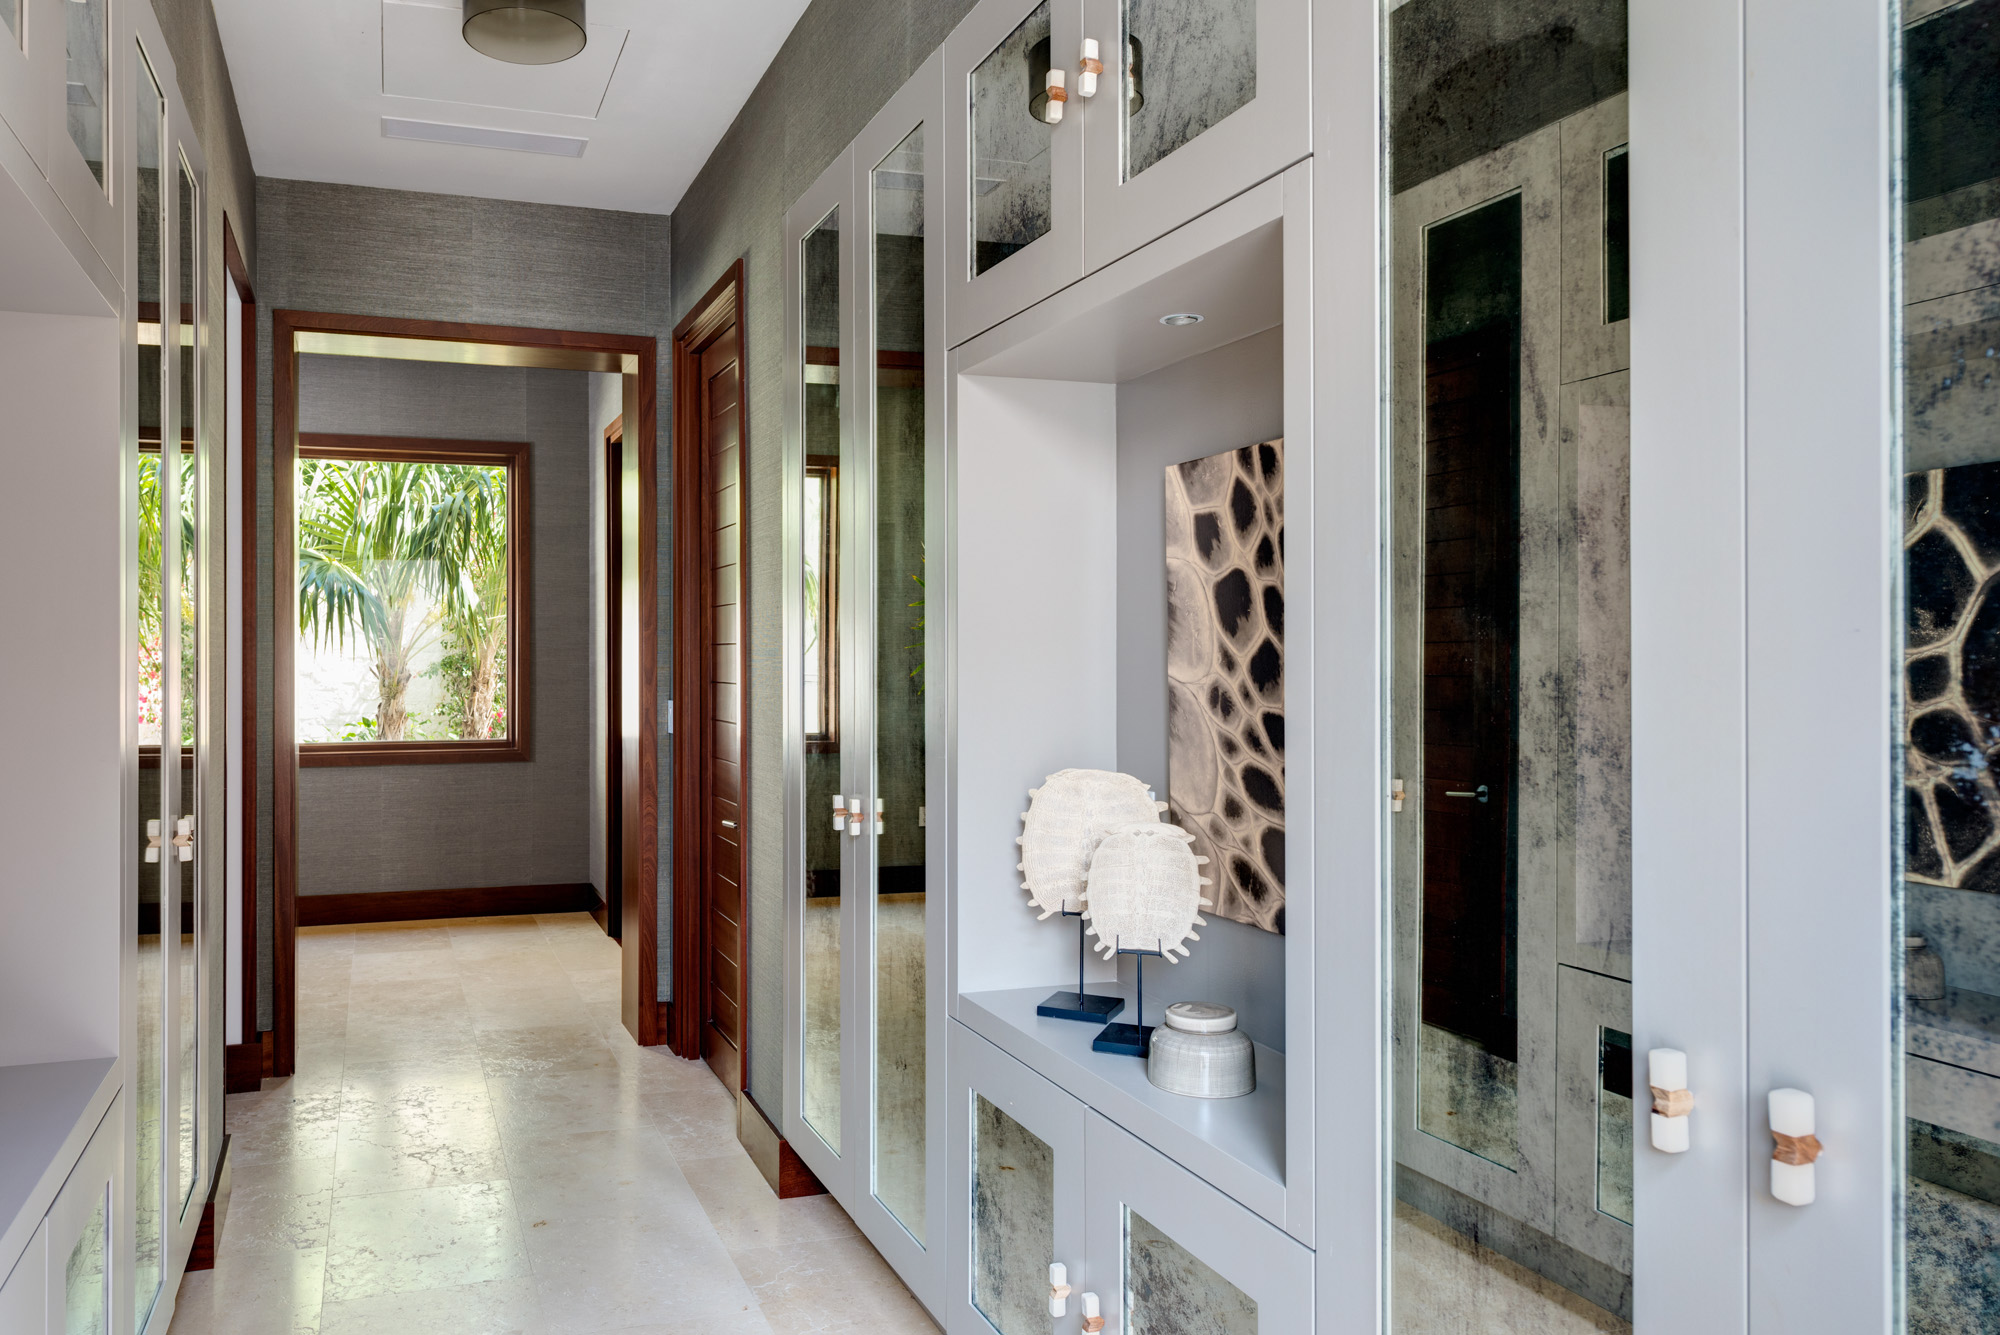 Hawksbill - internal view of cabinetry